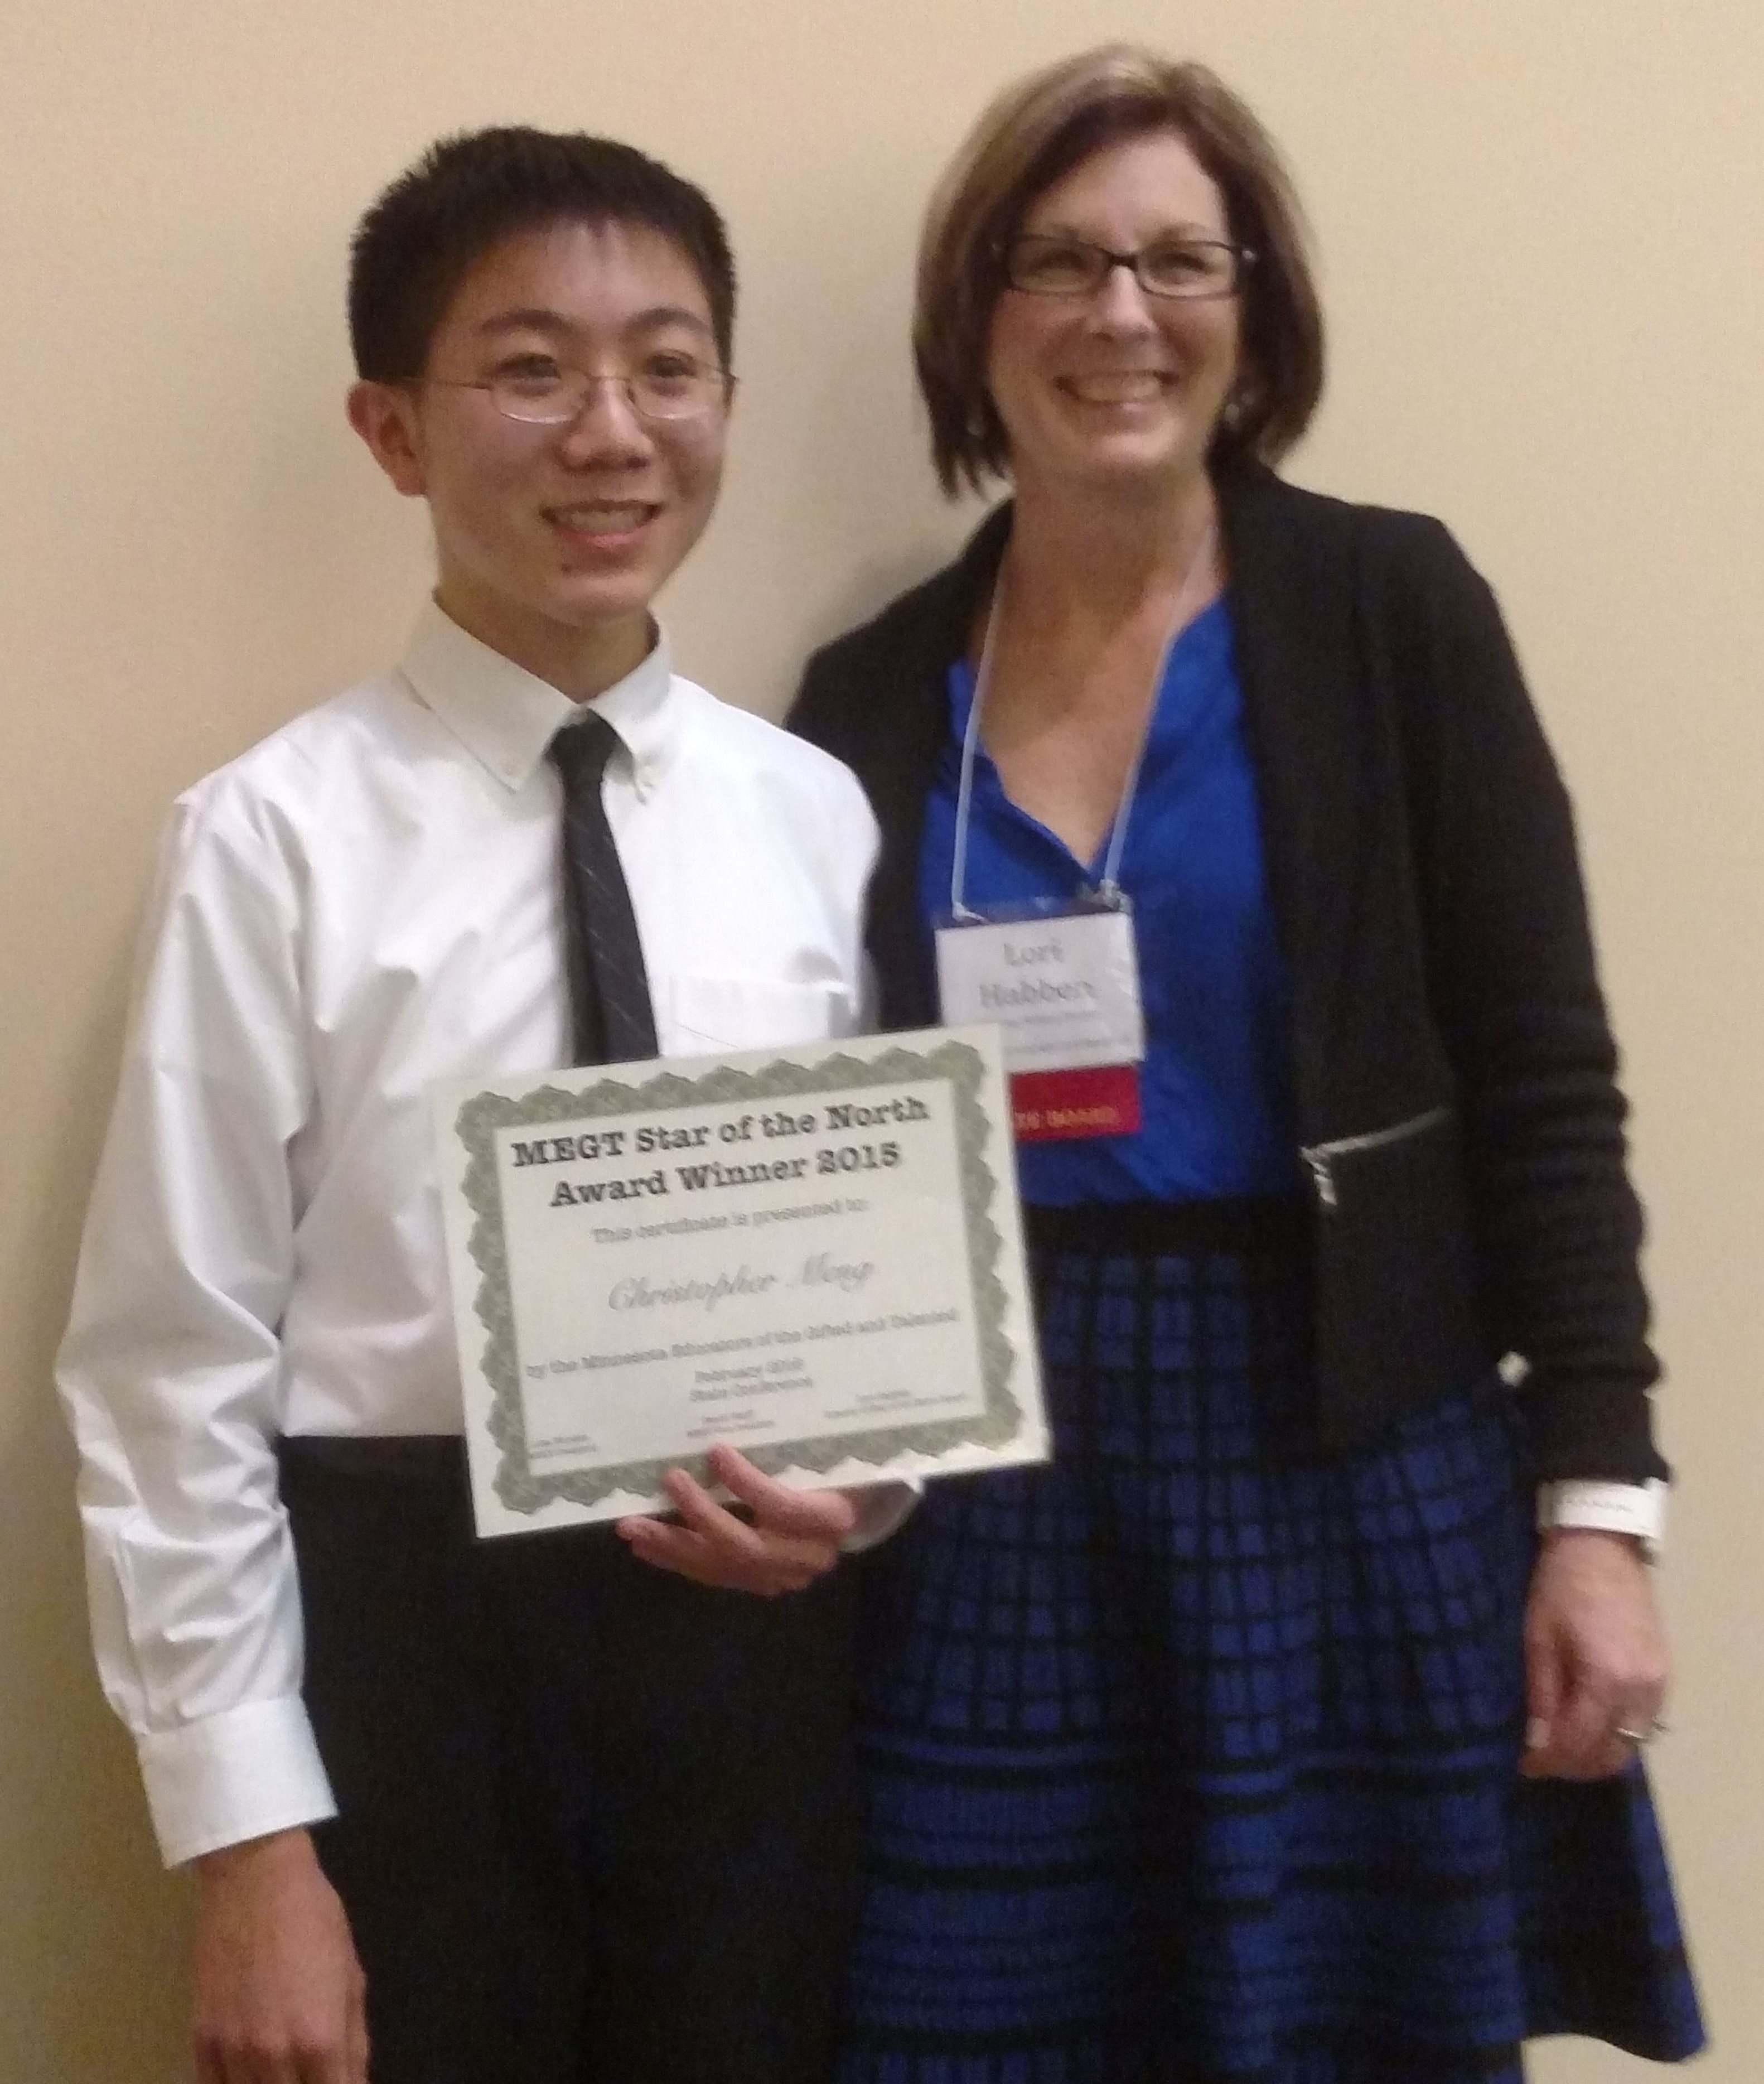 Christopher Meng, 2016 MEGT Star of the North Award Recipient